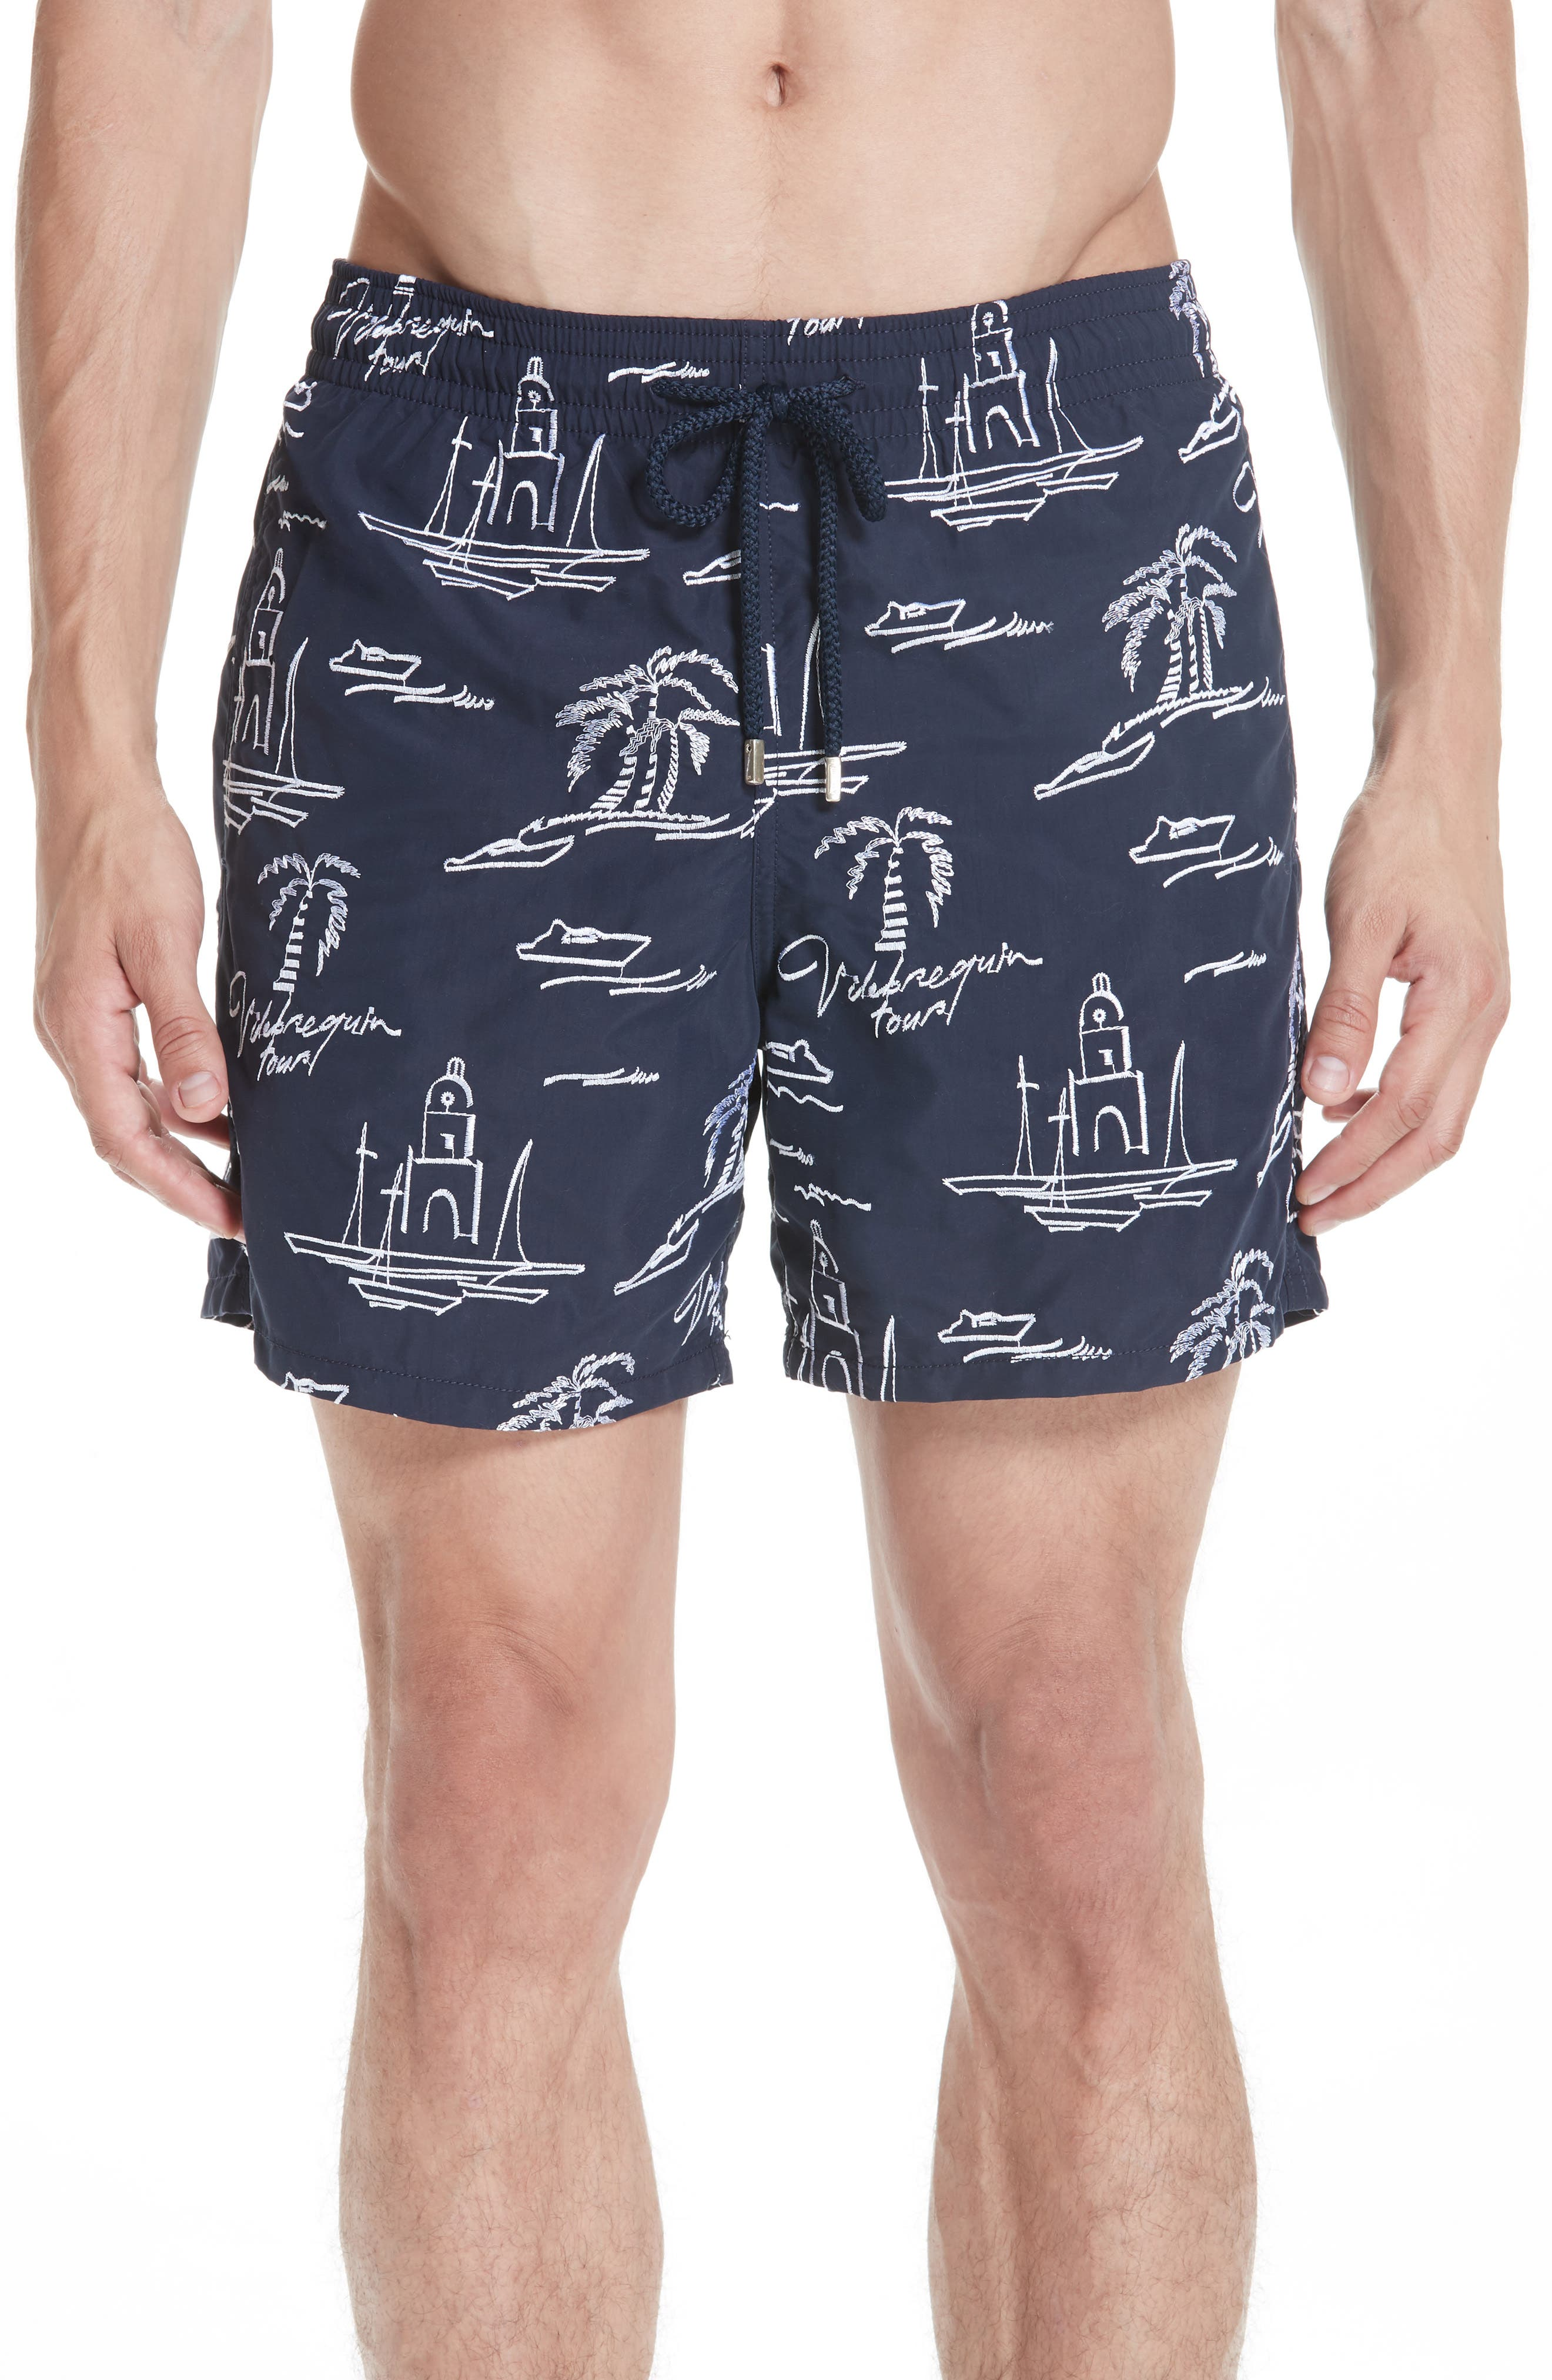 St. Tropez Embroidered Swim Trunks,                         Main,                         color, BLUE